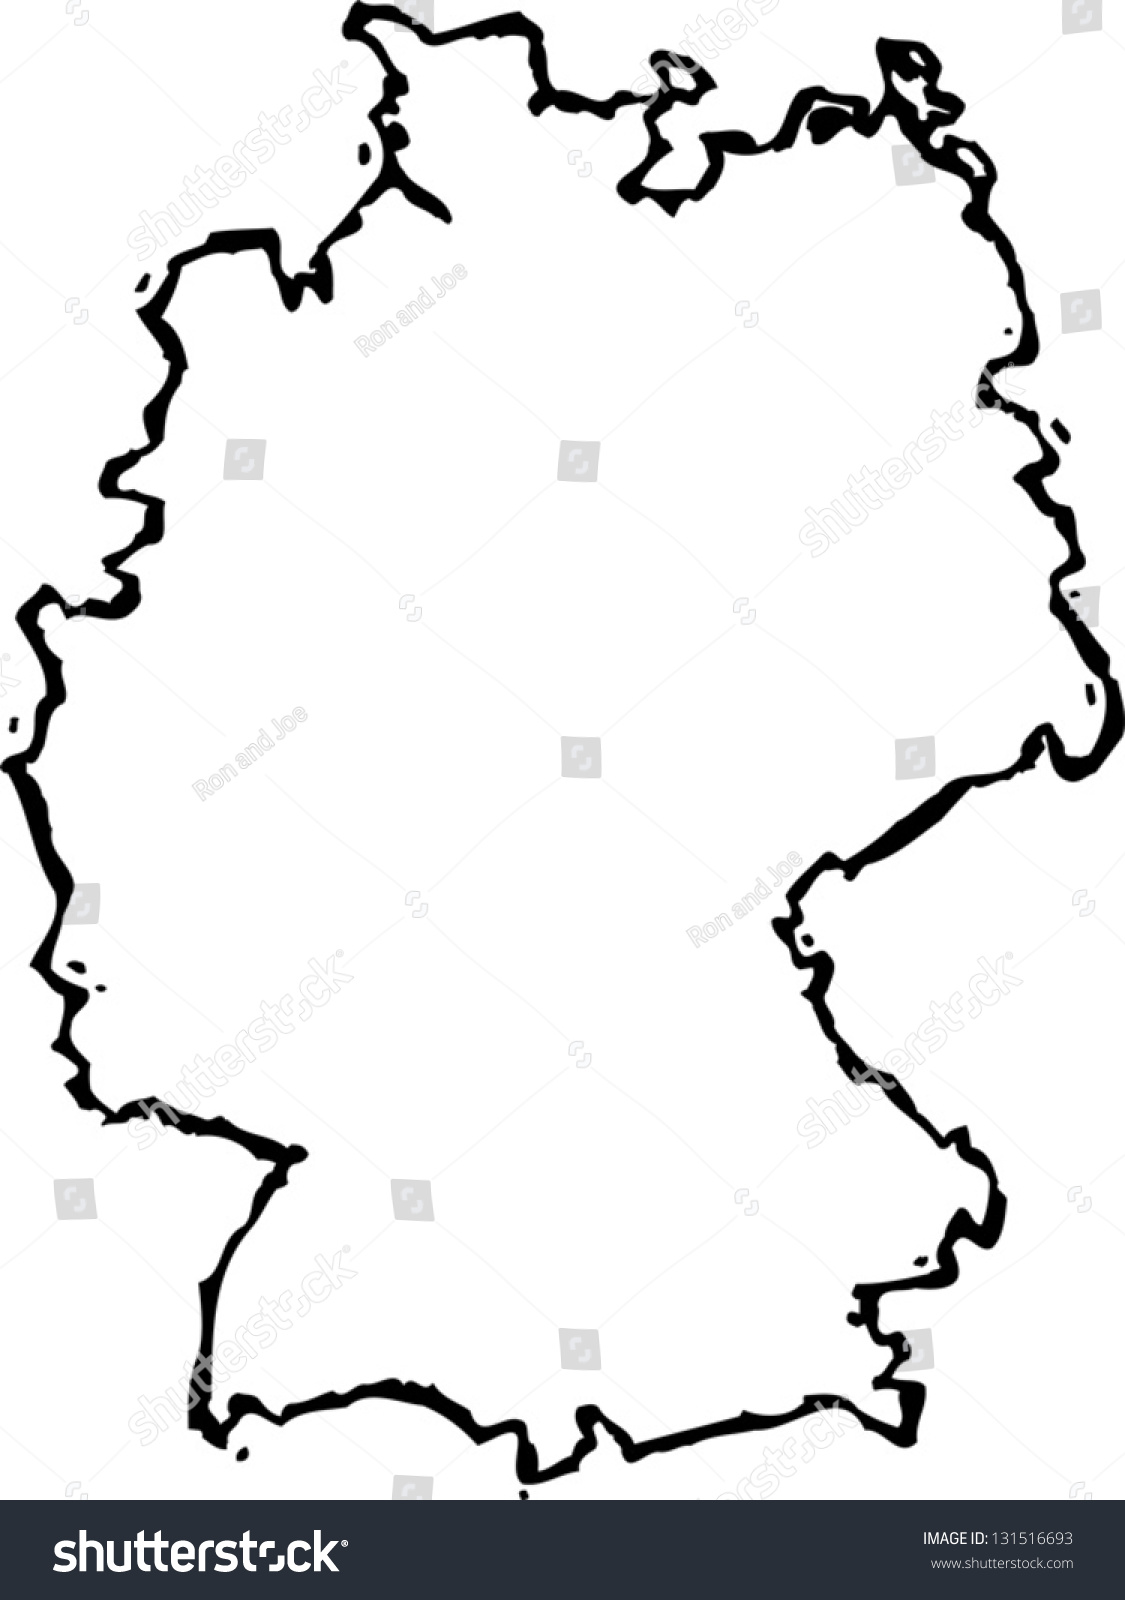 1125x1600 france germany map use w in map of germany and france